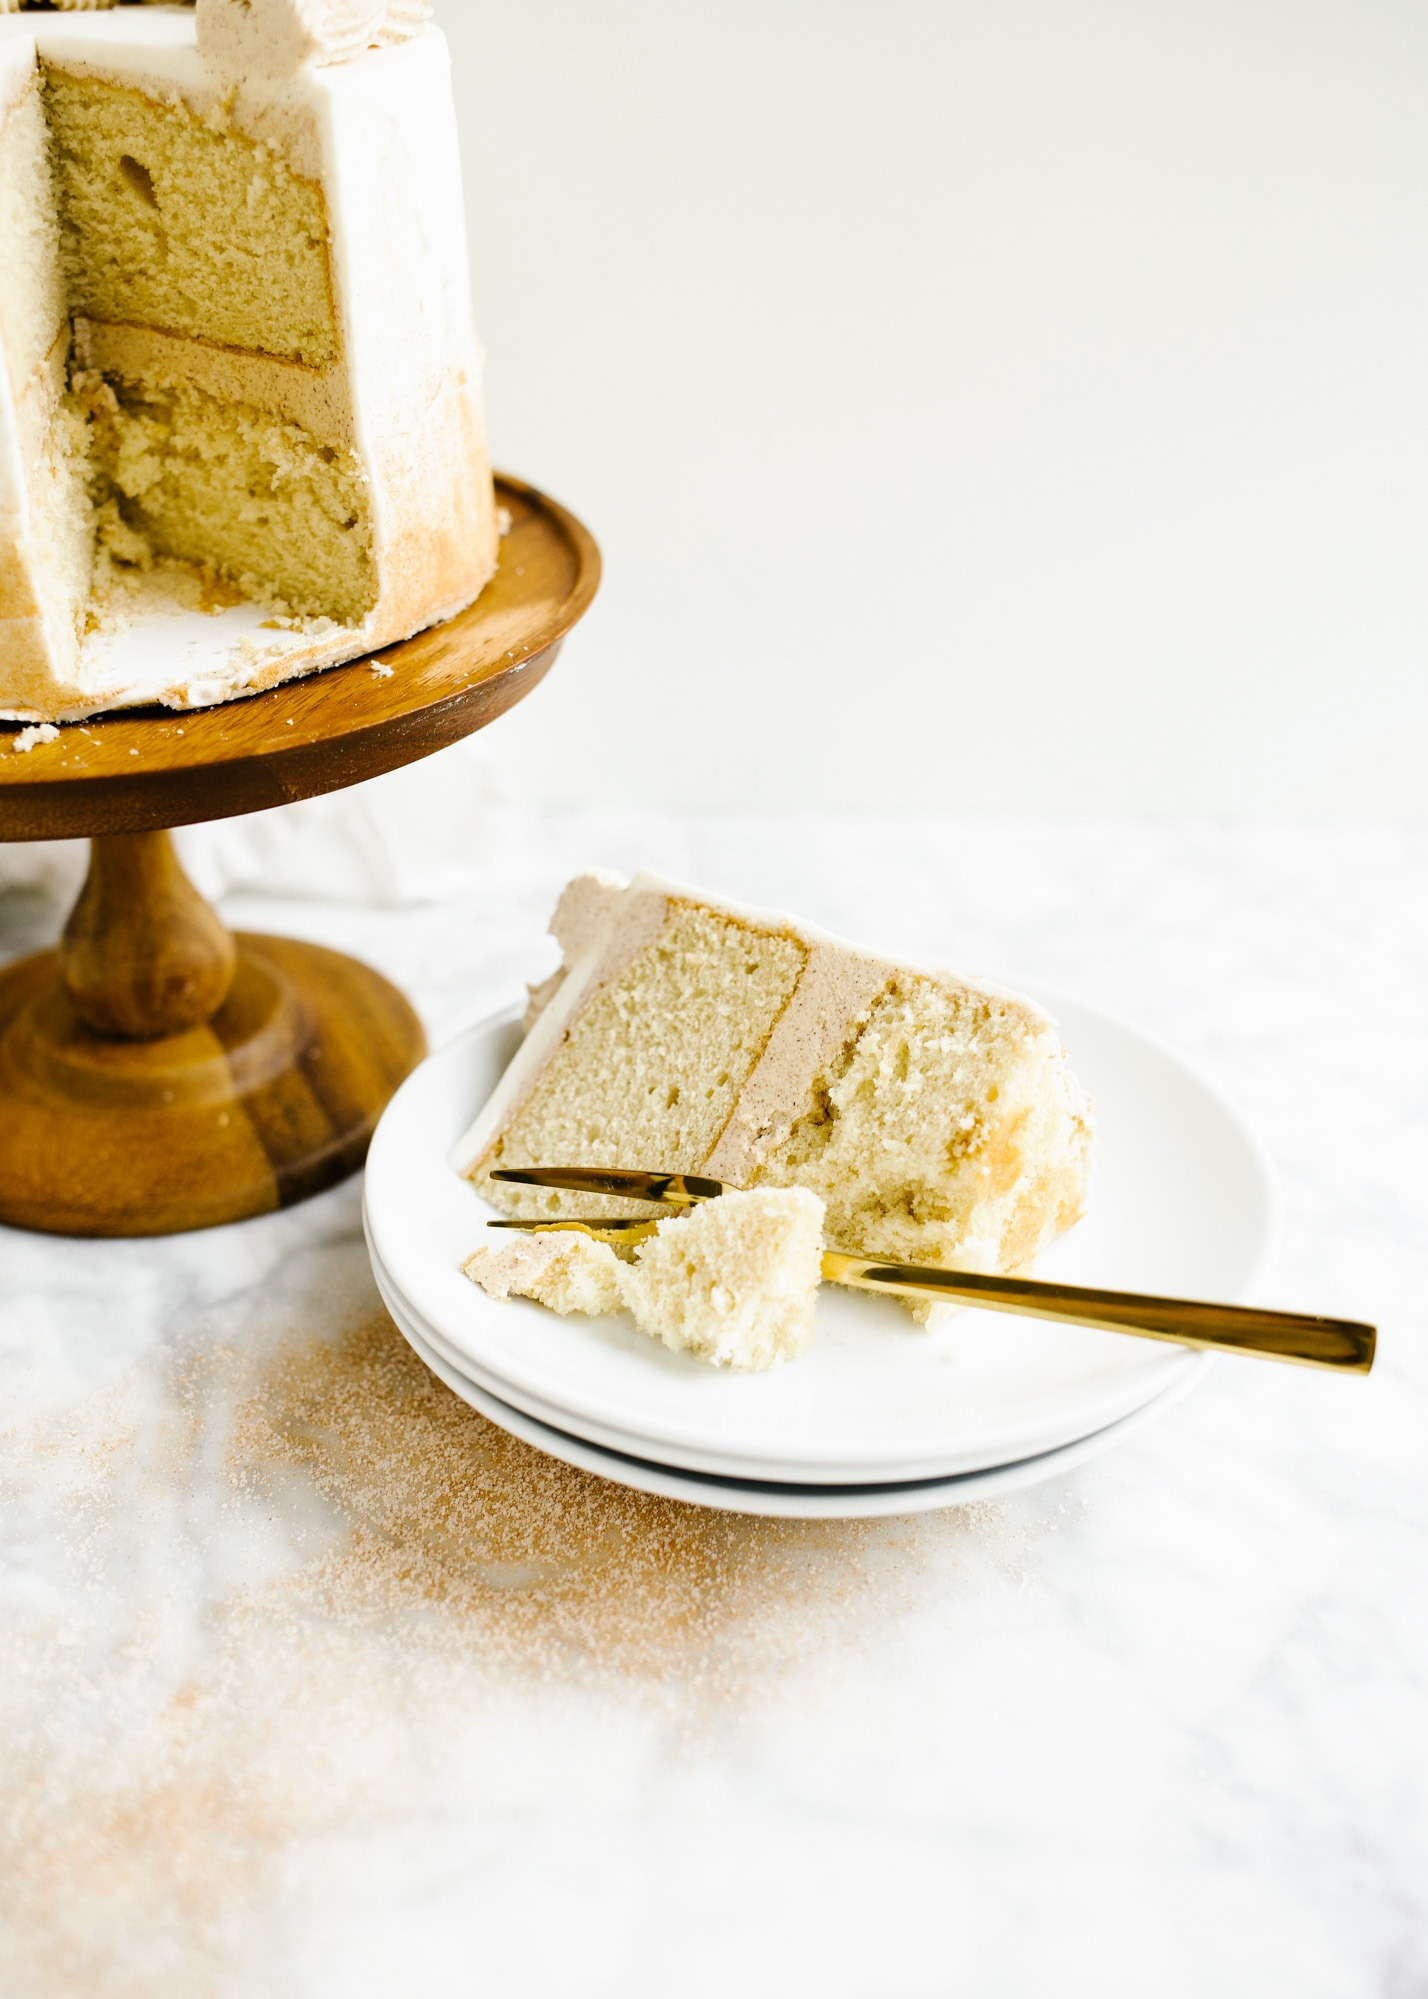 Cinnamon Sugar Cake by Wood and Spoon blog. This is a fluffy brown sugar cake with a salted cinnamon brown sugar filling and vanilla bean frosting. This spiced dessert is perfect for fall birthday parties or holiday gatherings or anyone who loves good cozy flavors. Learn more about this cake on thewoodandspoon.com